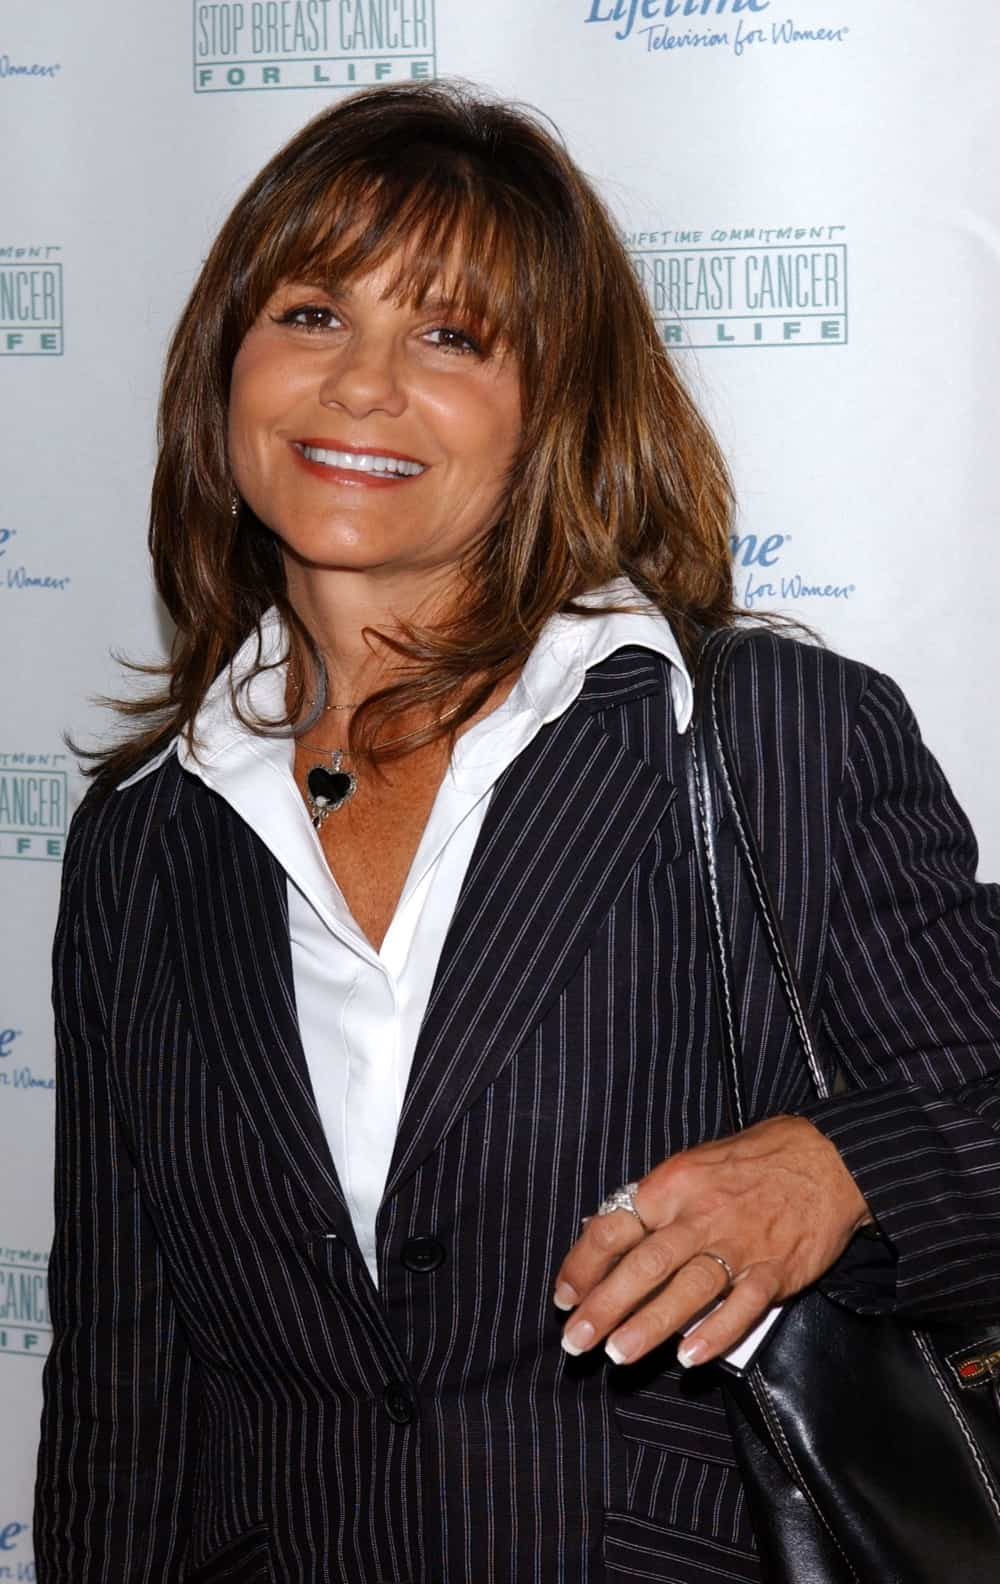 """Lynne Spears Lifetime Television """"Breast Cancer Heroes Luncheon"""""""